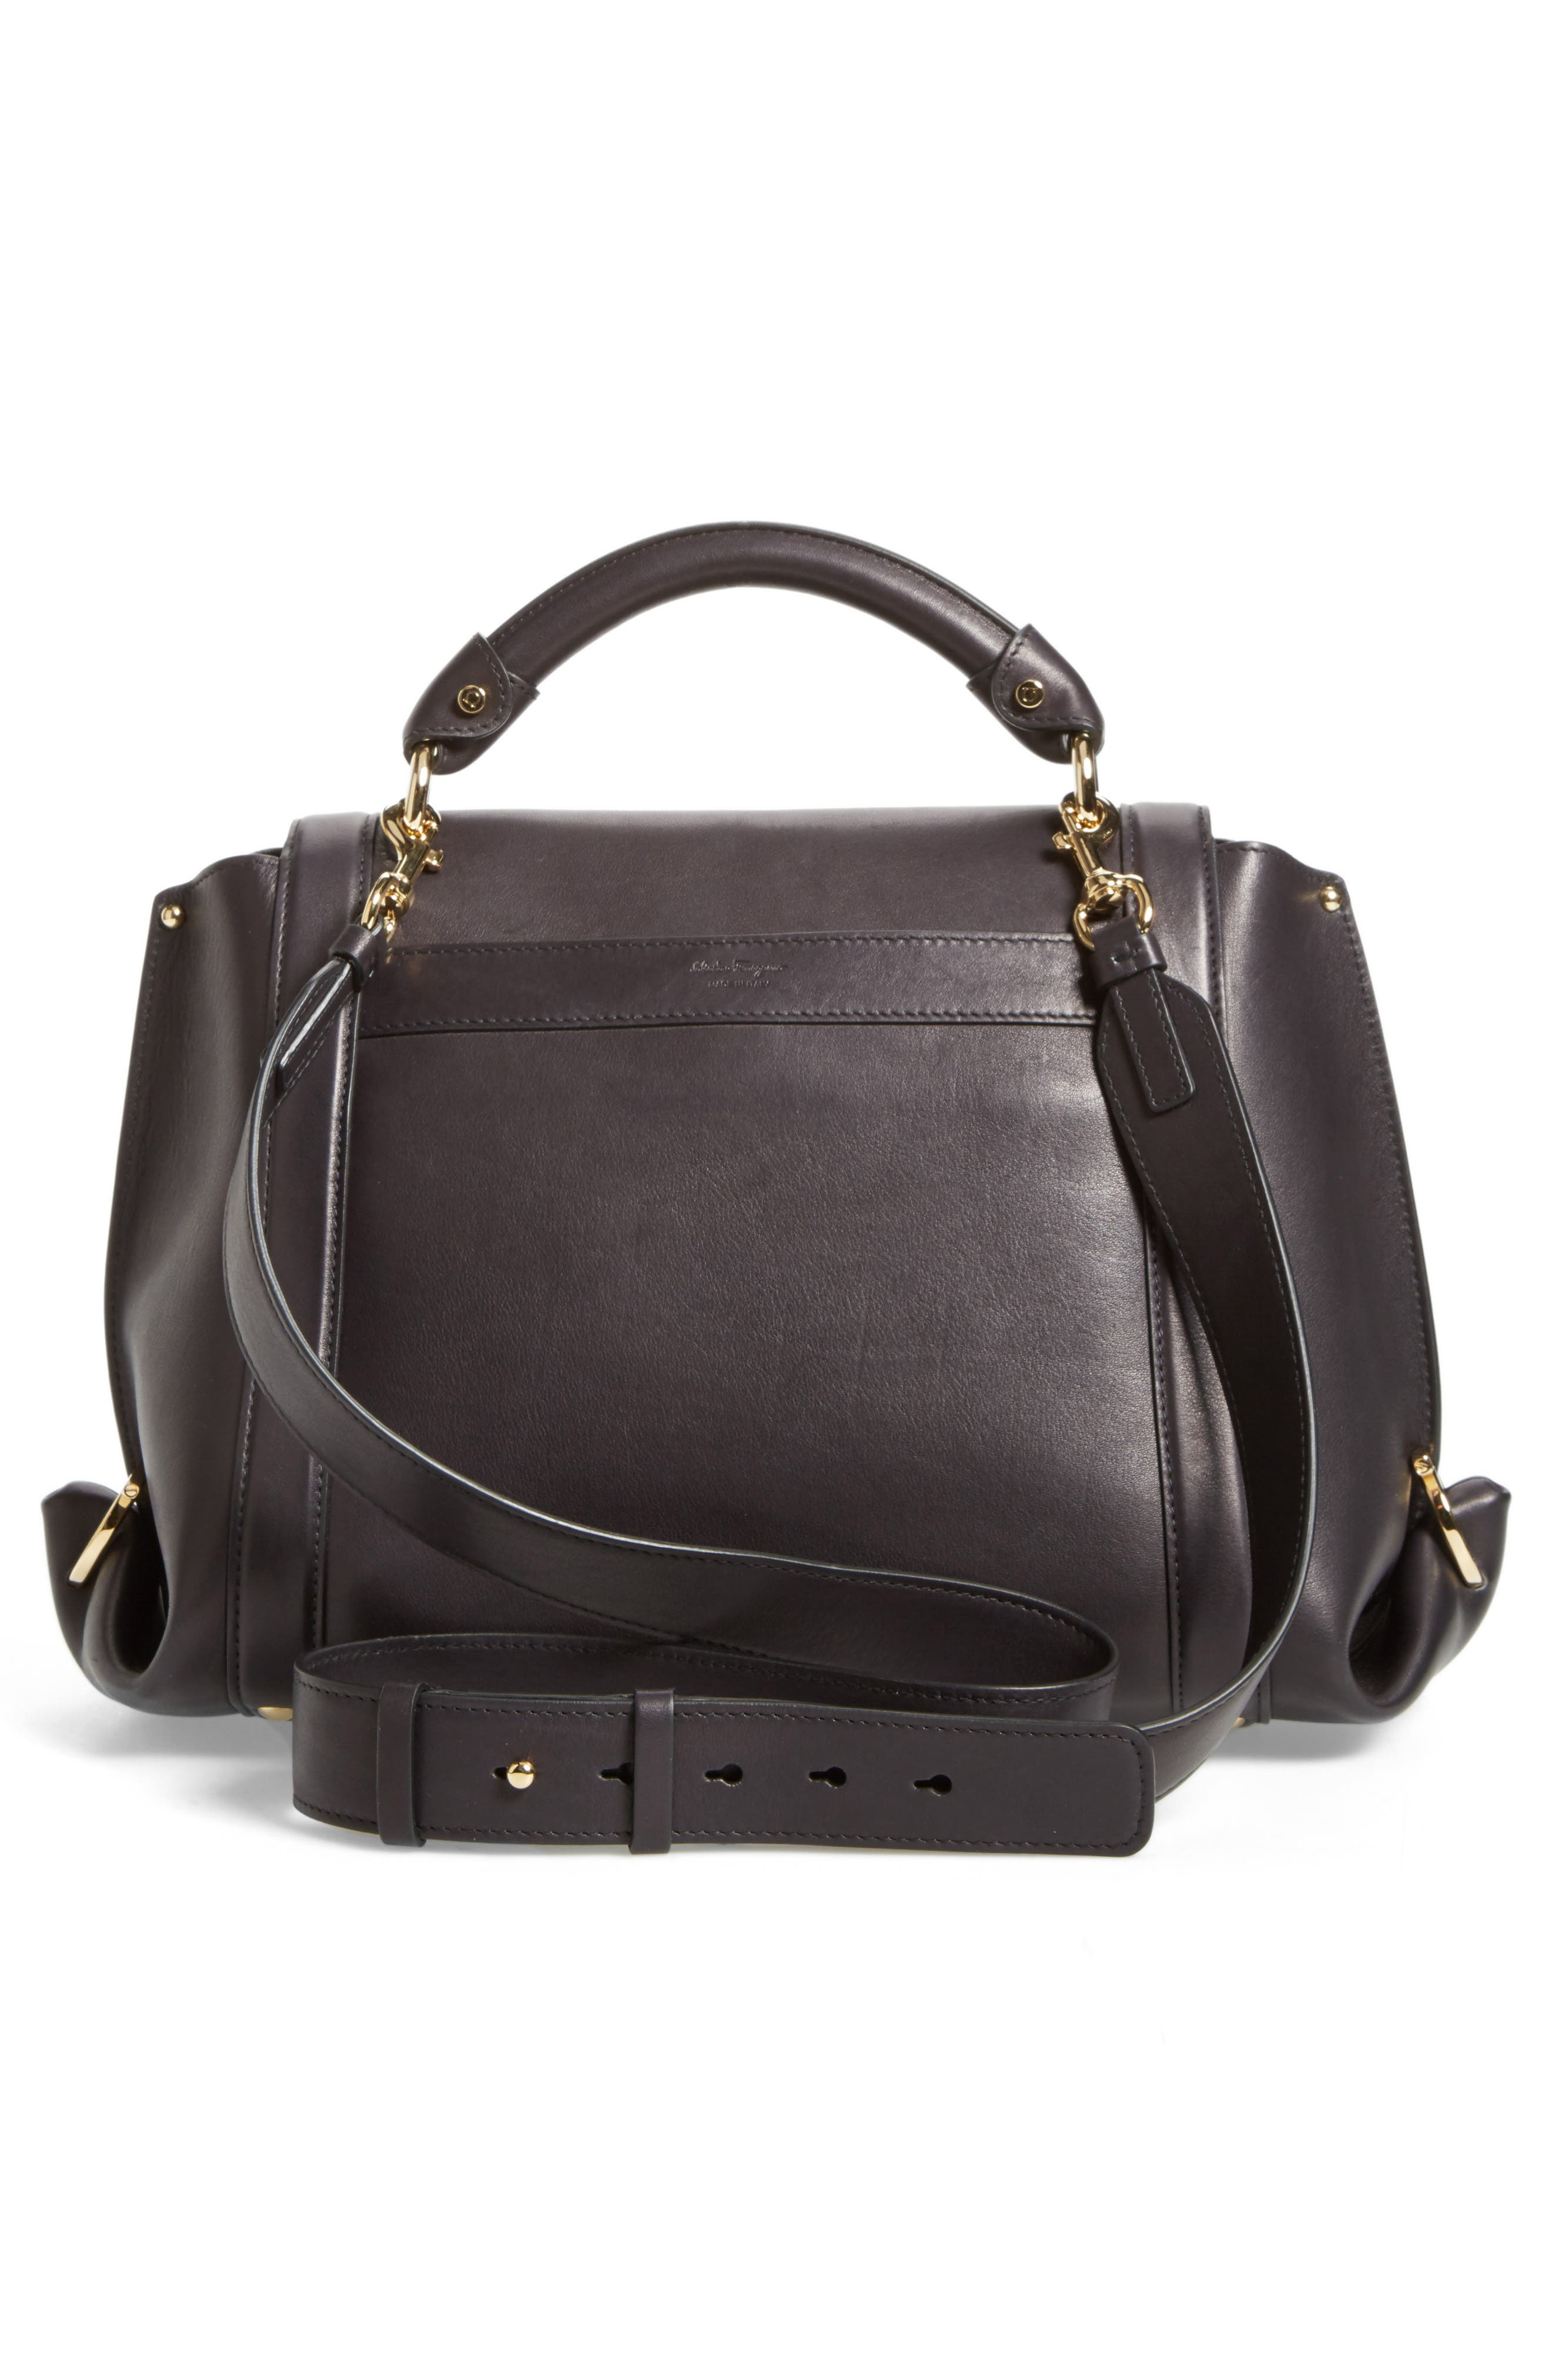 Medium Leather Satchel,                             Alternate thumbnail 3, color,                             001